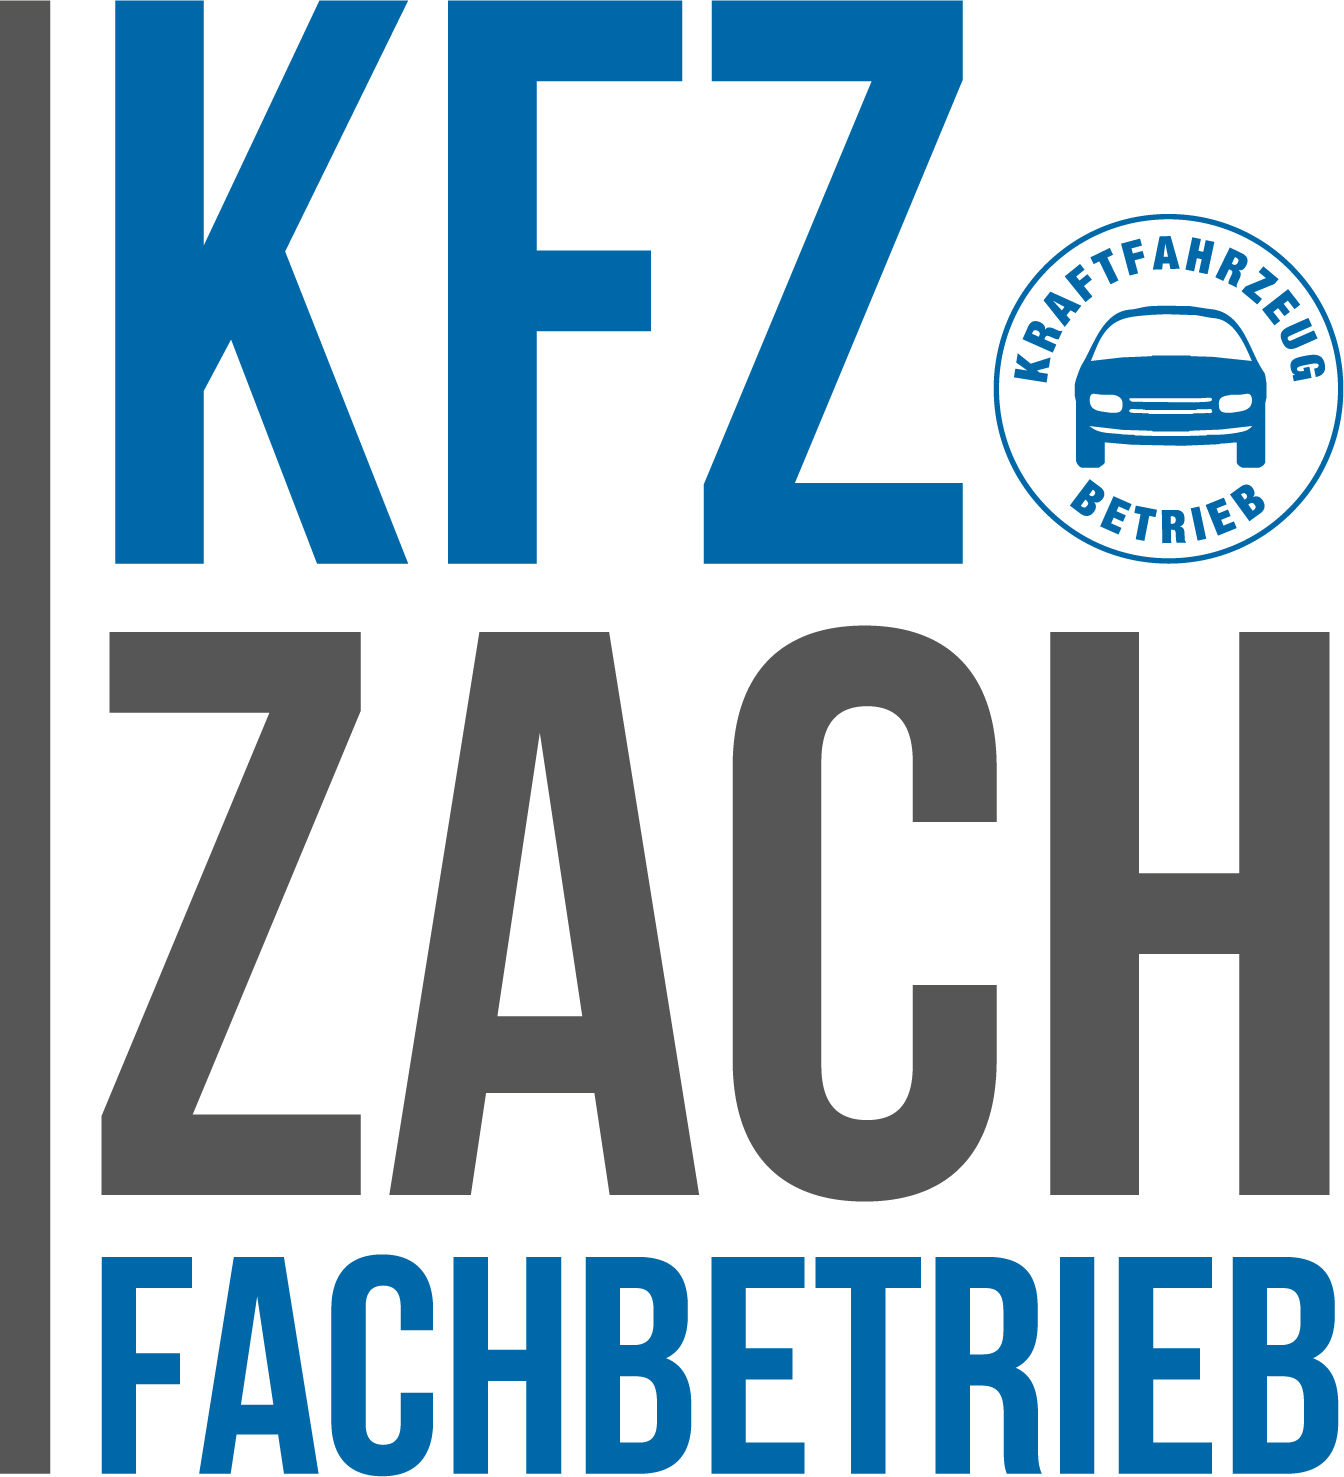 www.zach-kfz.at